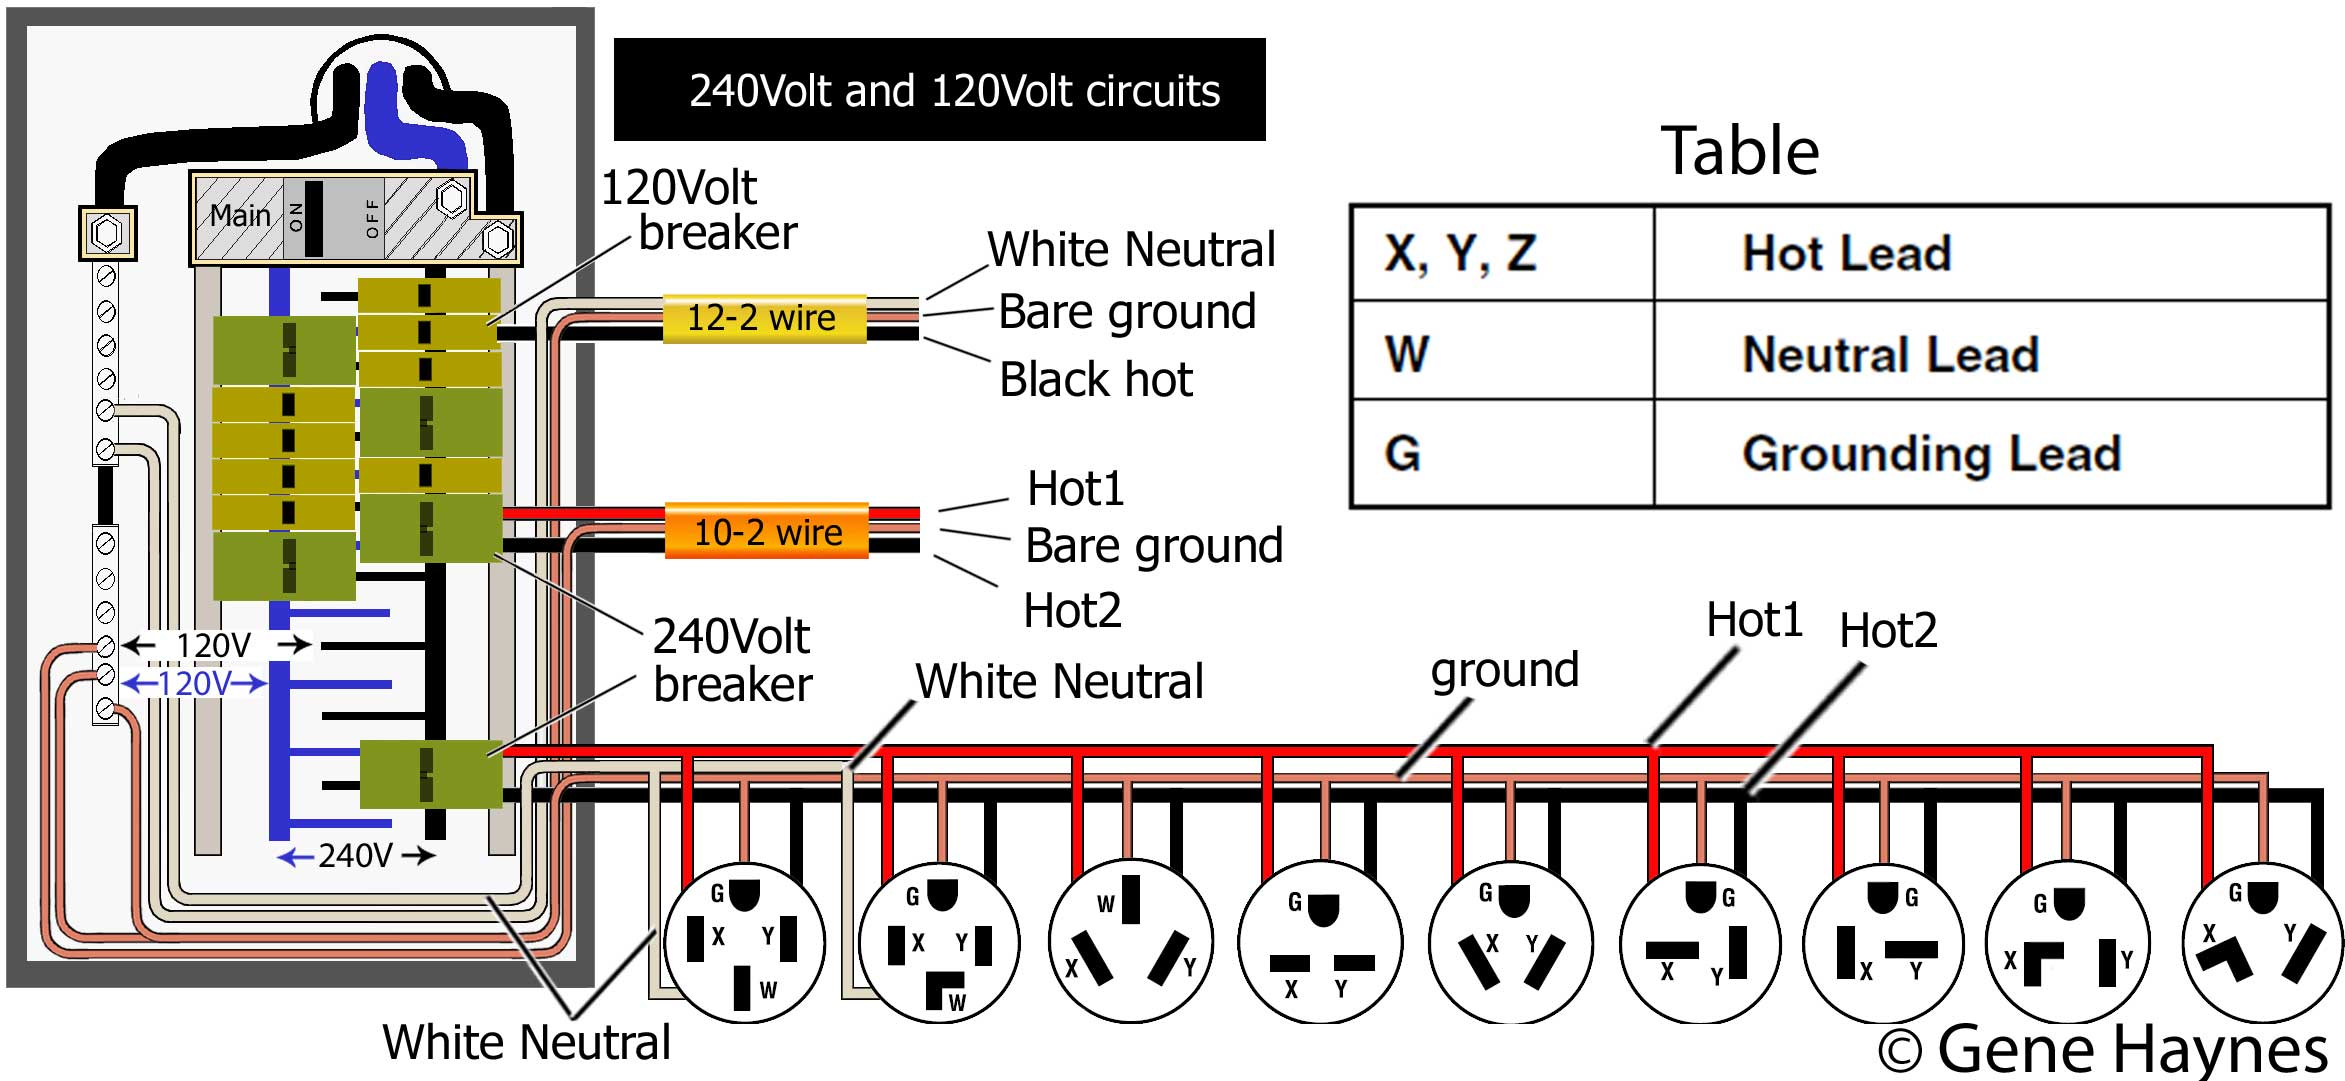 15 Amp Plug Diagram 15 Get Free Image About Wiring Diagram - WIRE ...